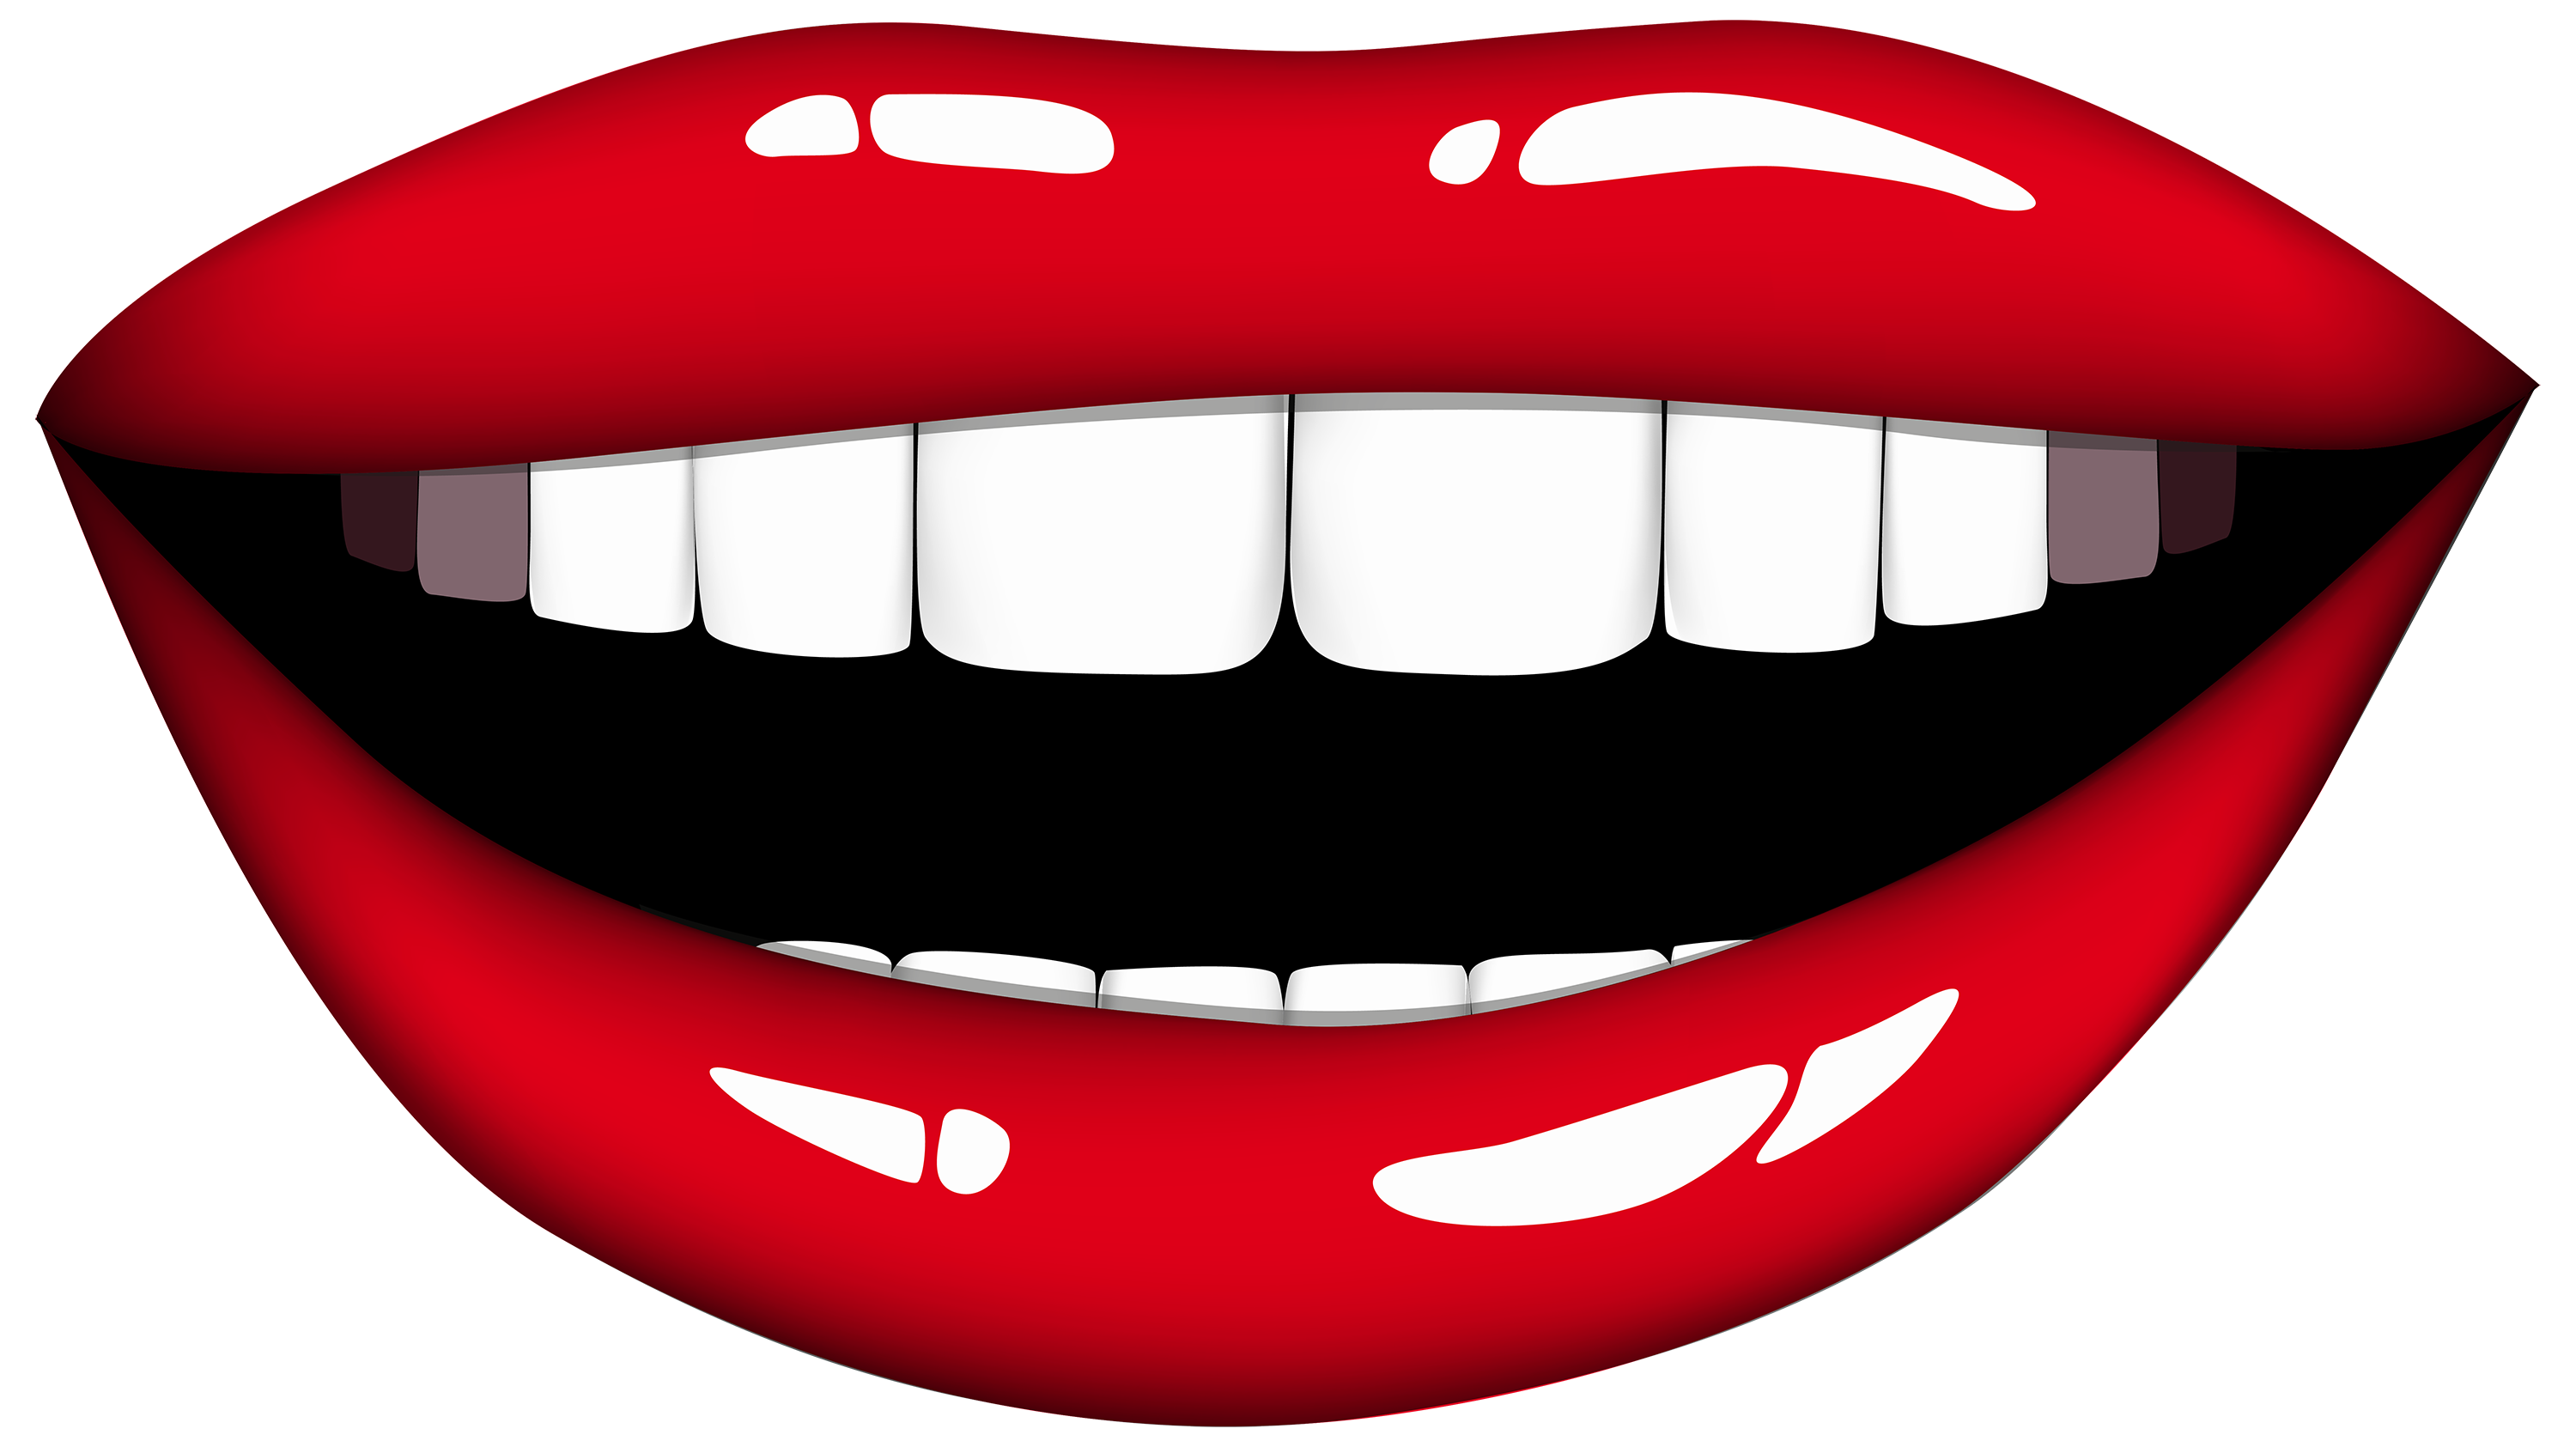 Smile lips clipart free clipart images 6 - Smile Lips PNG - Smiling Lips PNG HD